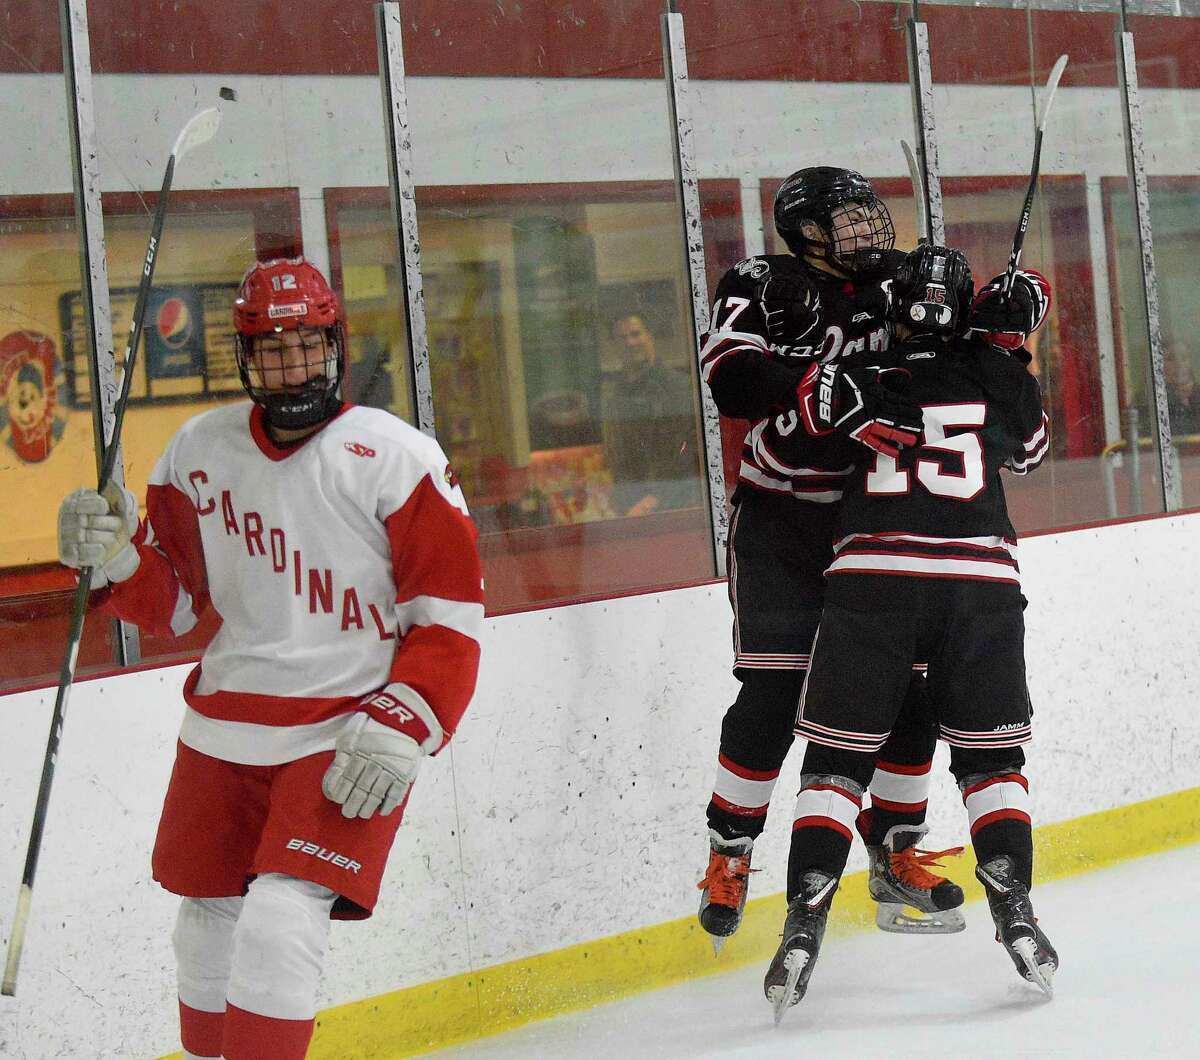 New Canaan's Justin Wietfeldt (17) celebrates his goal with Nicholas Megdanis (15) against Greenwich in an FCIAC boys hockey game at Dorothy Hamill Ice Rink on Feb. 13, 2020 in Greenwich Connecticut. No. 5 New Canaan defeated No. 4 Greenwich 3-2.